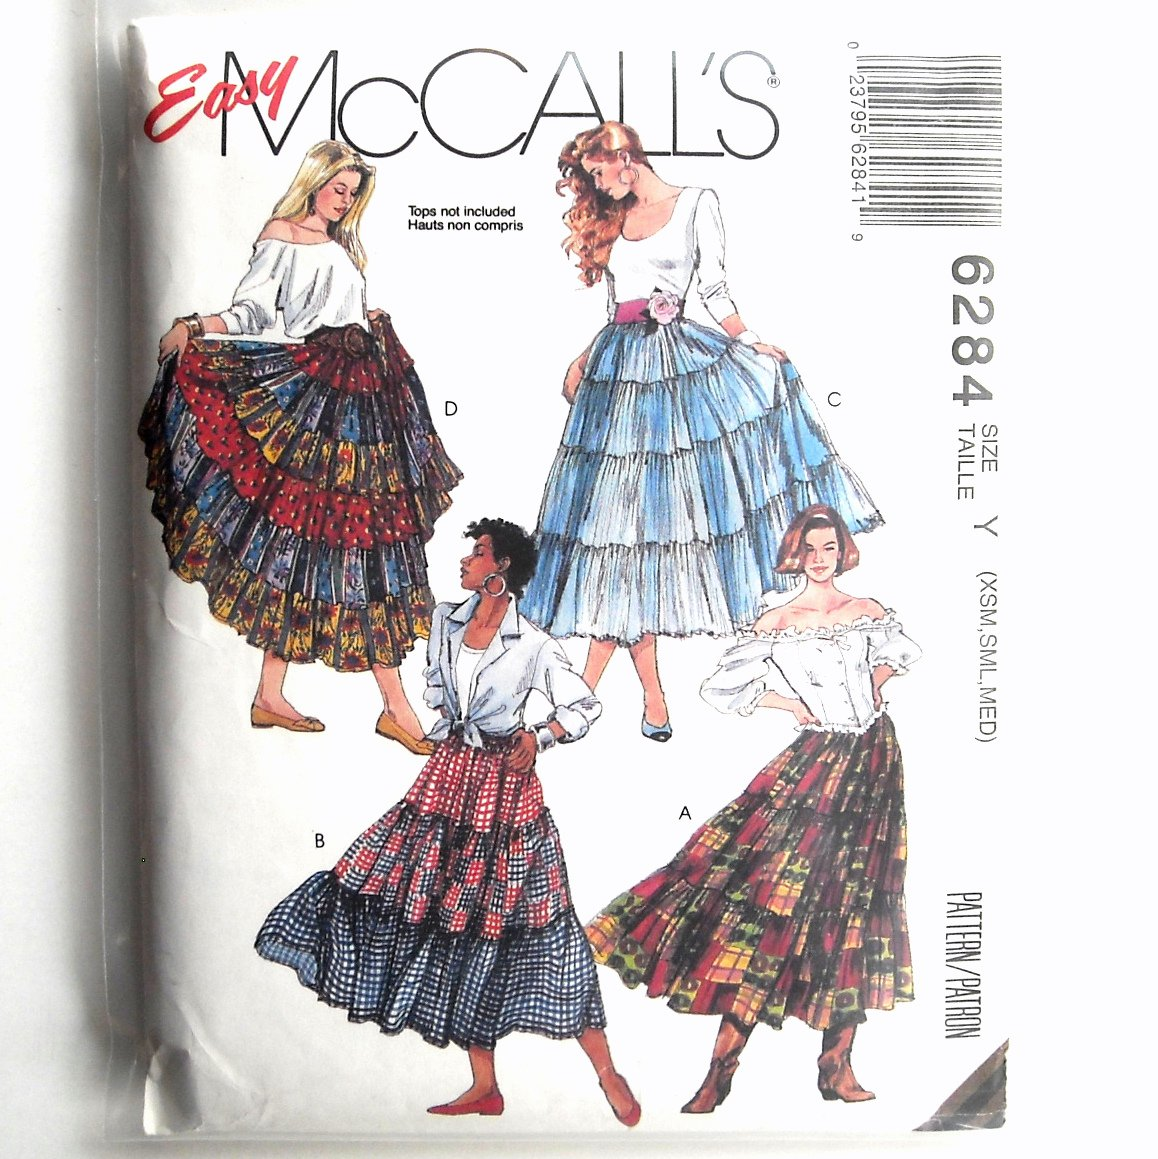 Misses Pull On Western Tiered Skirts Size XS S M McCall's Sewing Pattern 6284